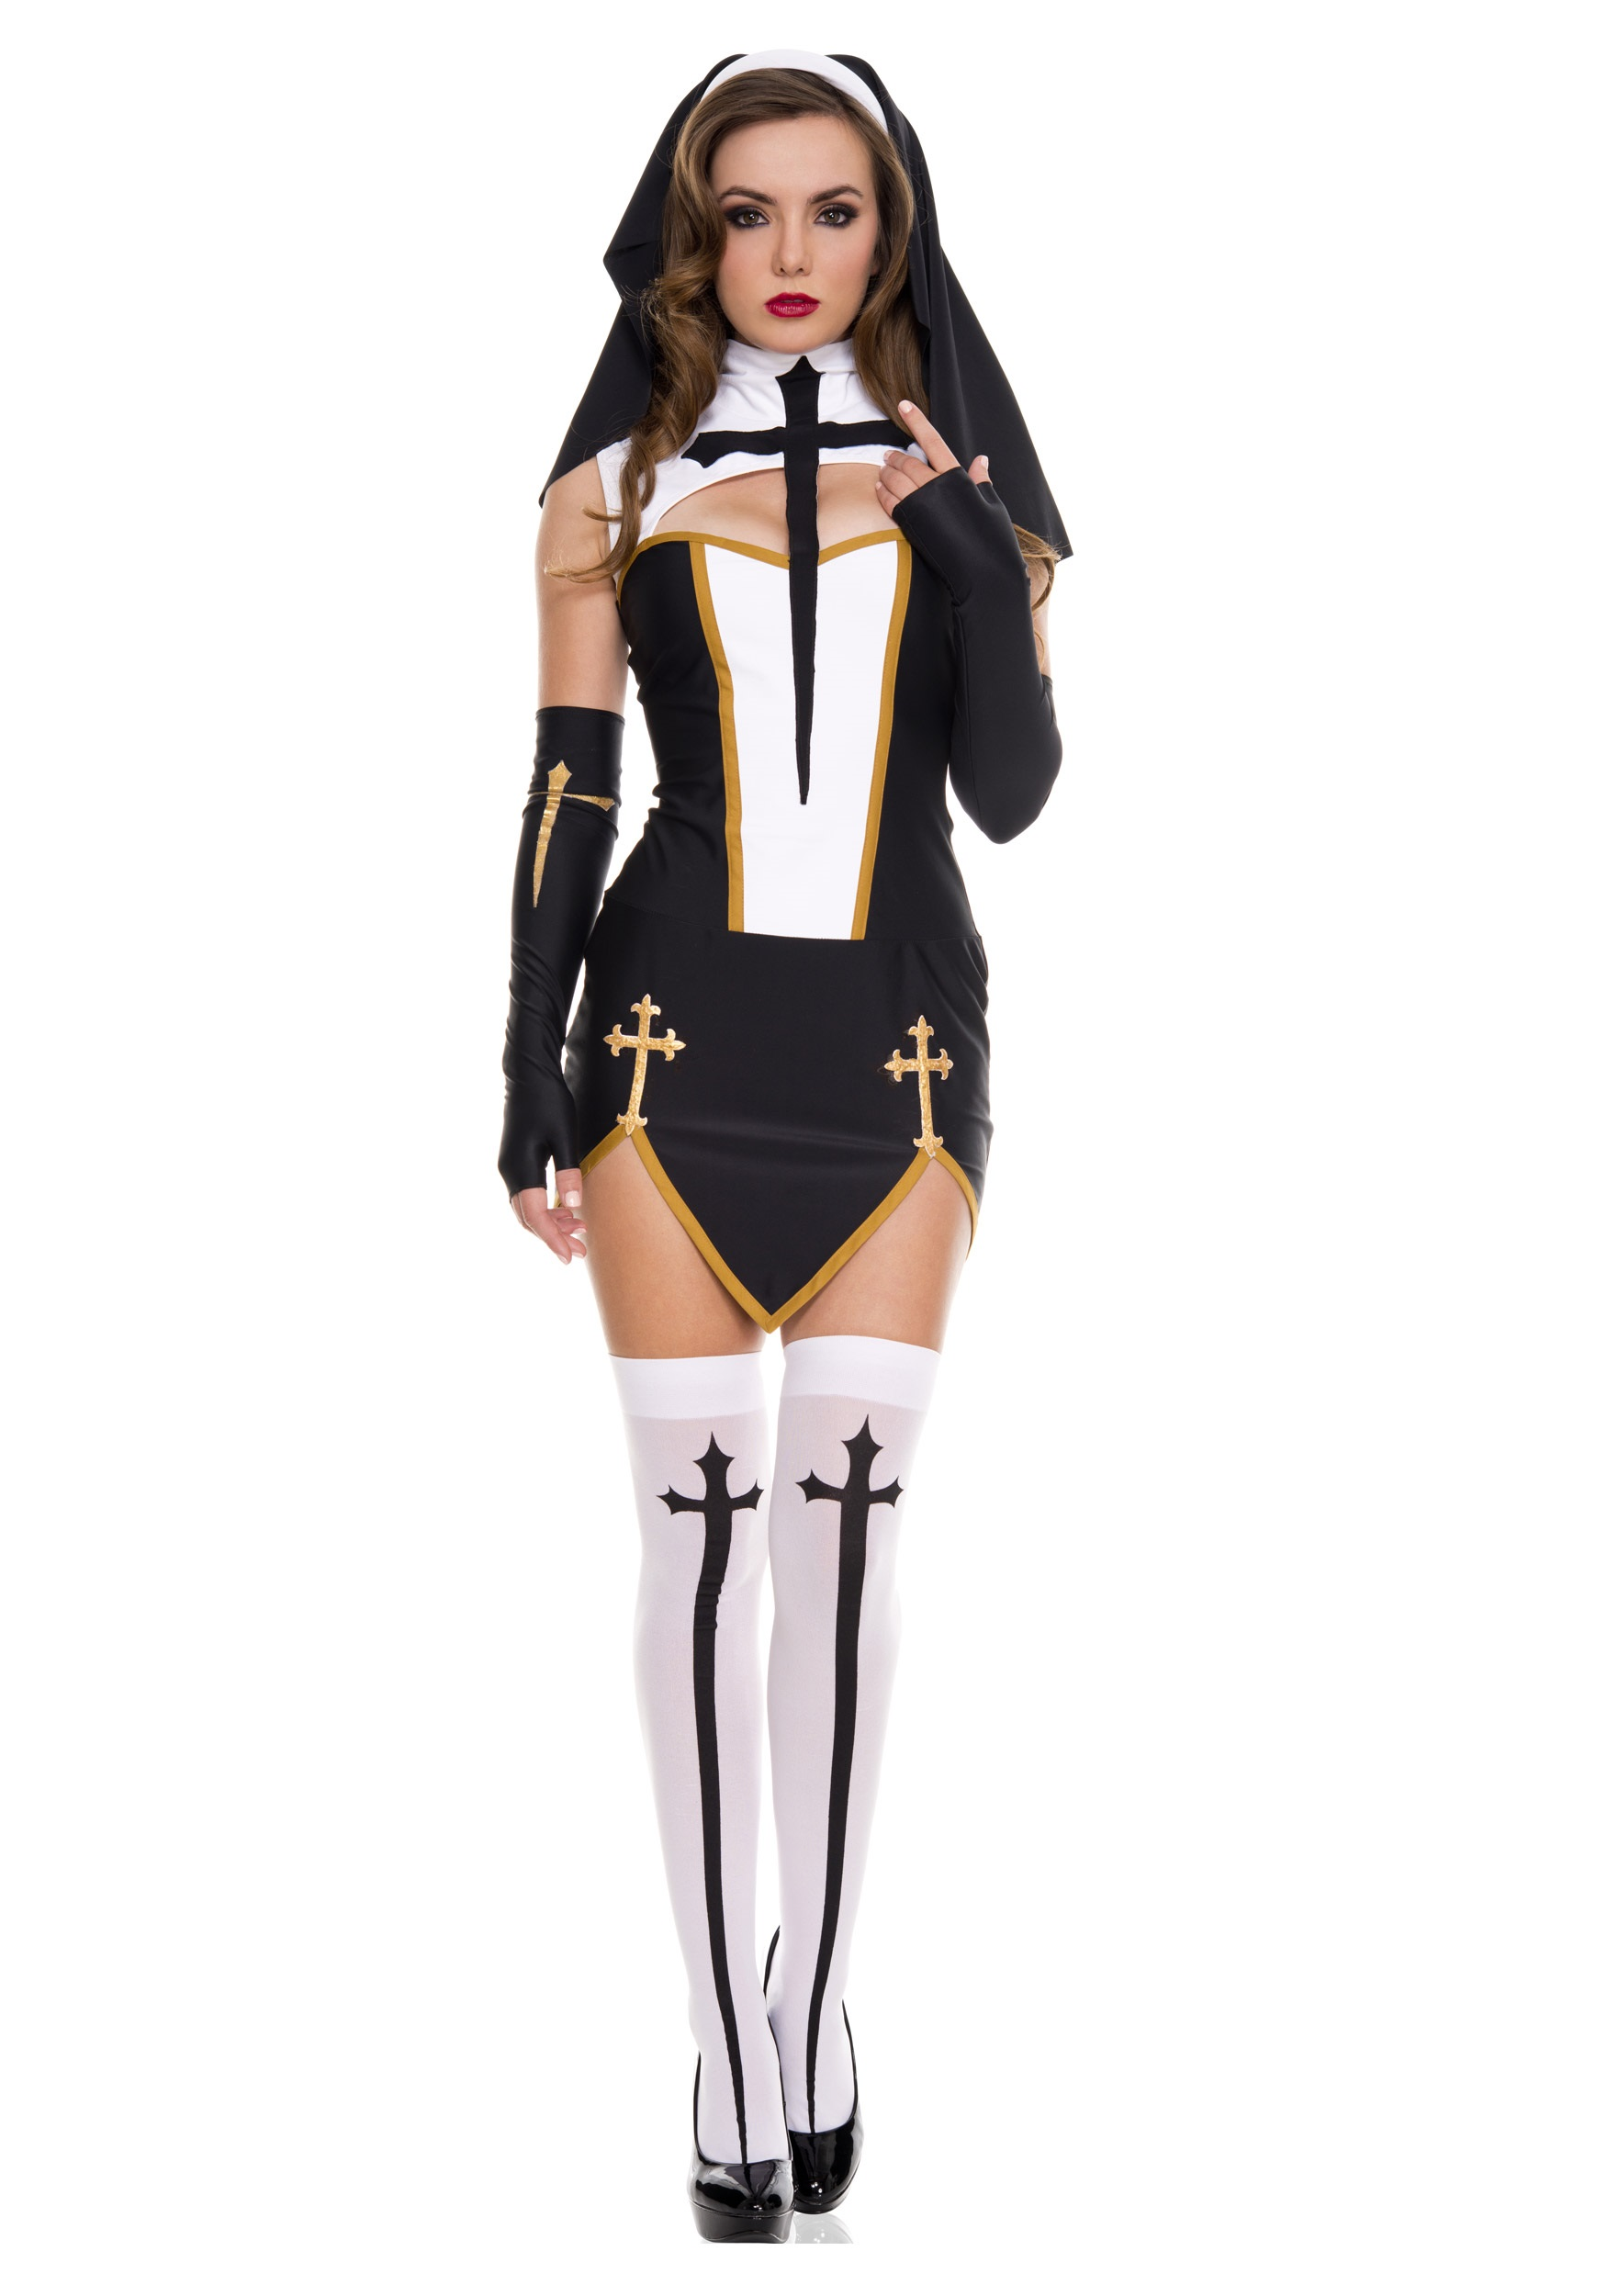 Bad Habit Nun Costume